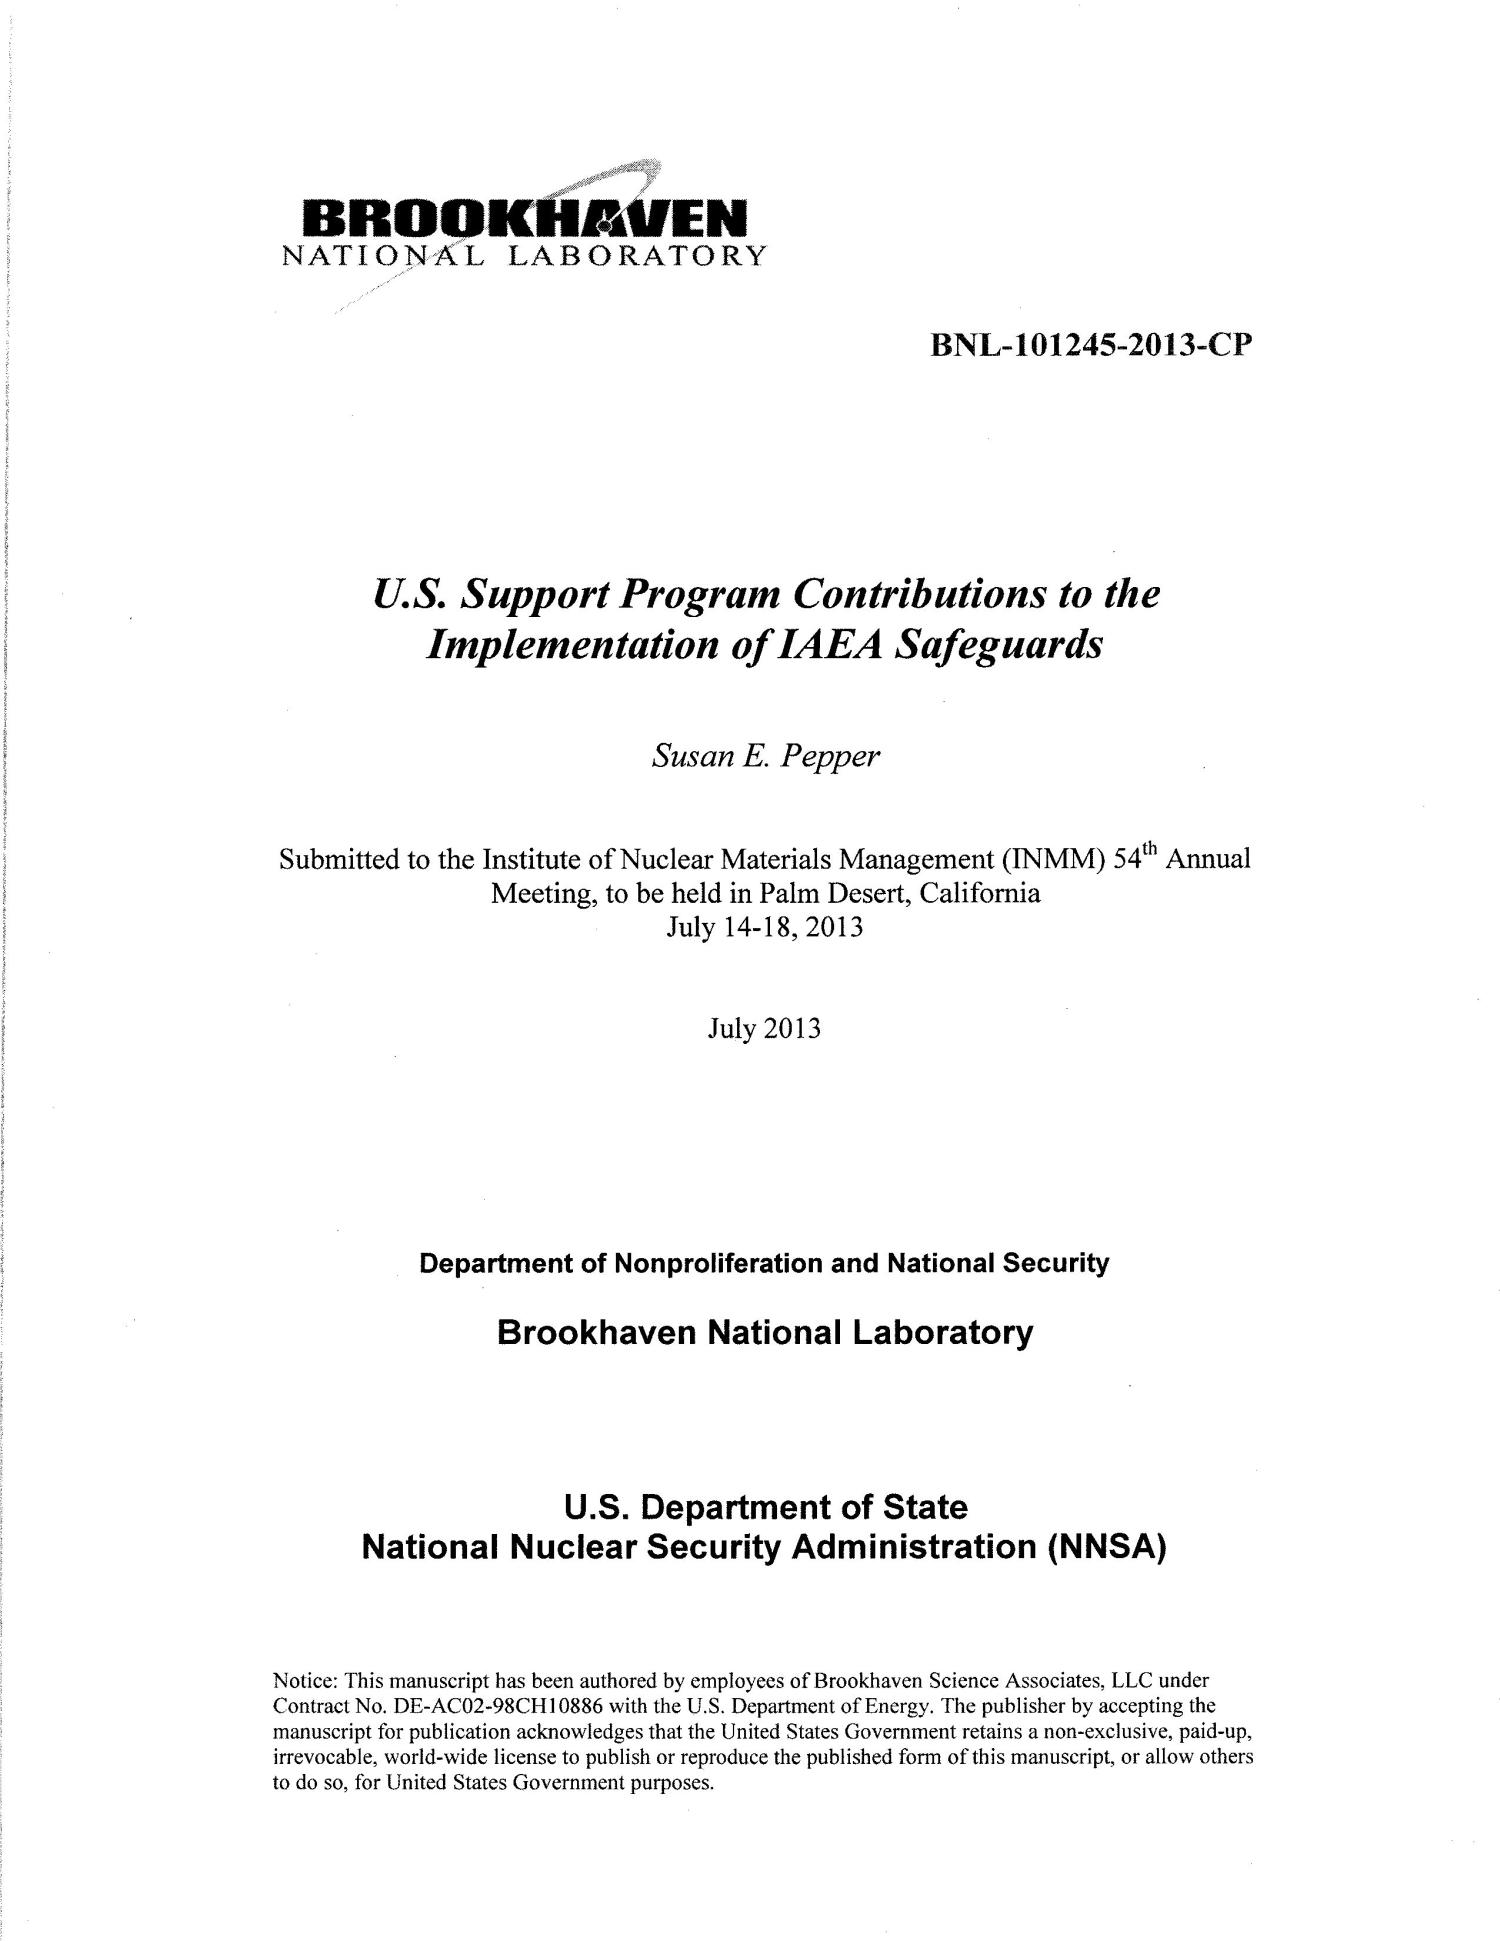 U.S. Support Program Contributions to the Implementation of IAEA Safeguards                                                                                                      [Sequence #]: 1 of 11